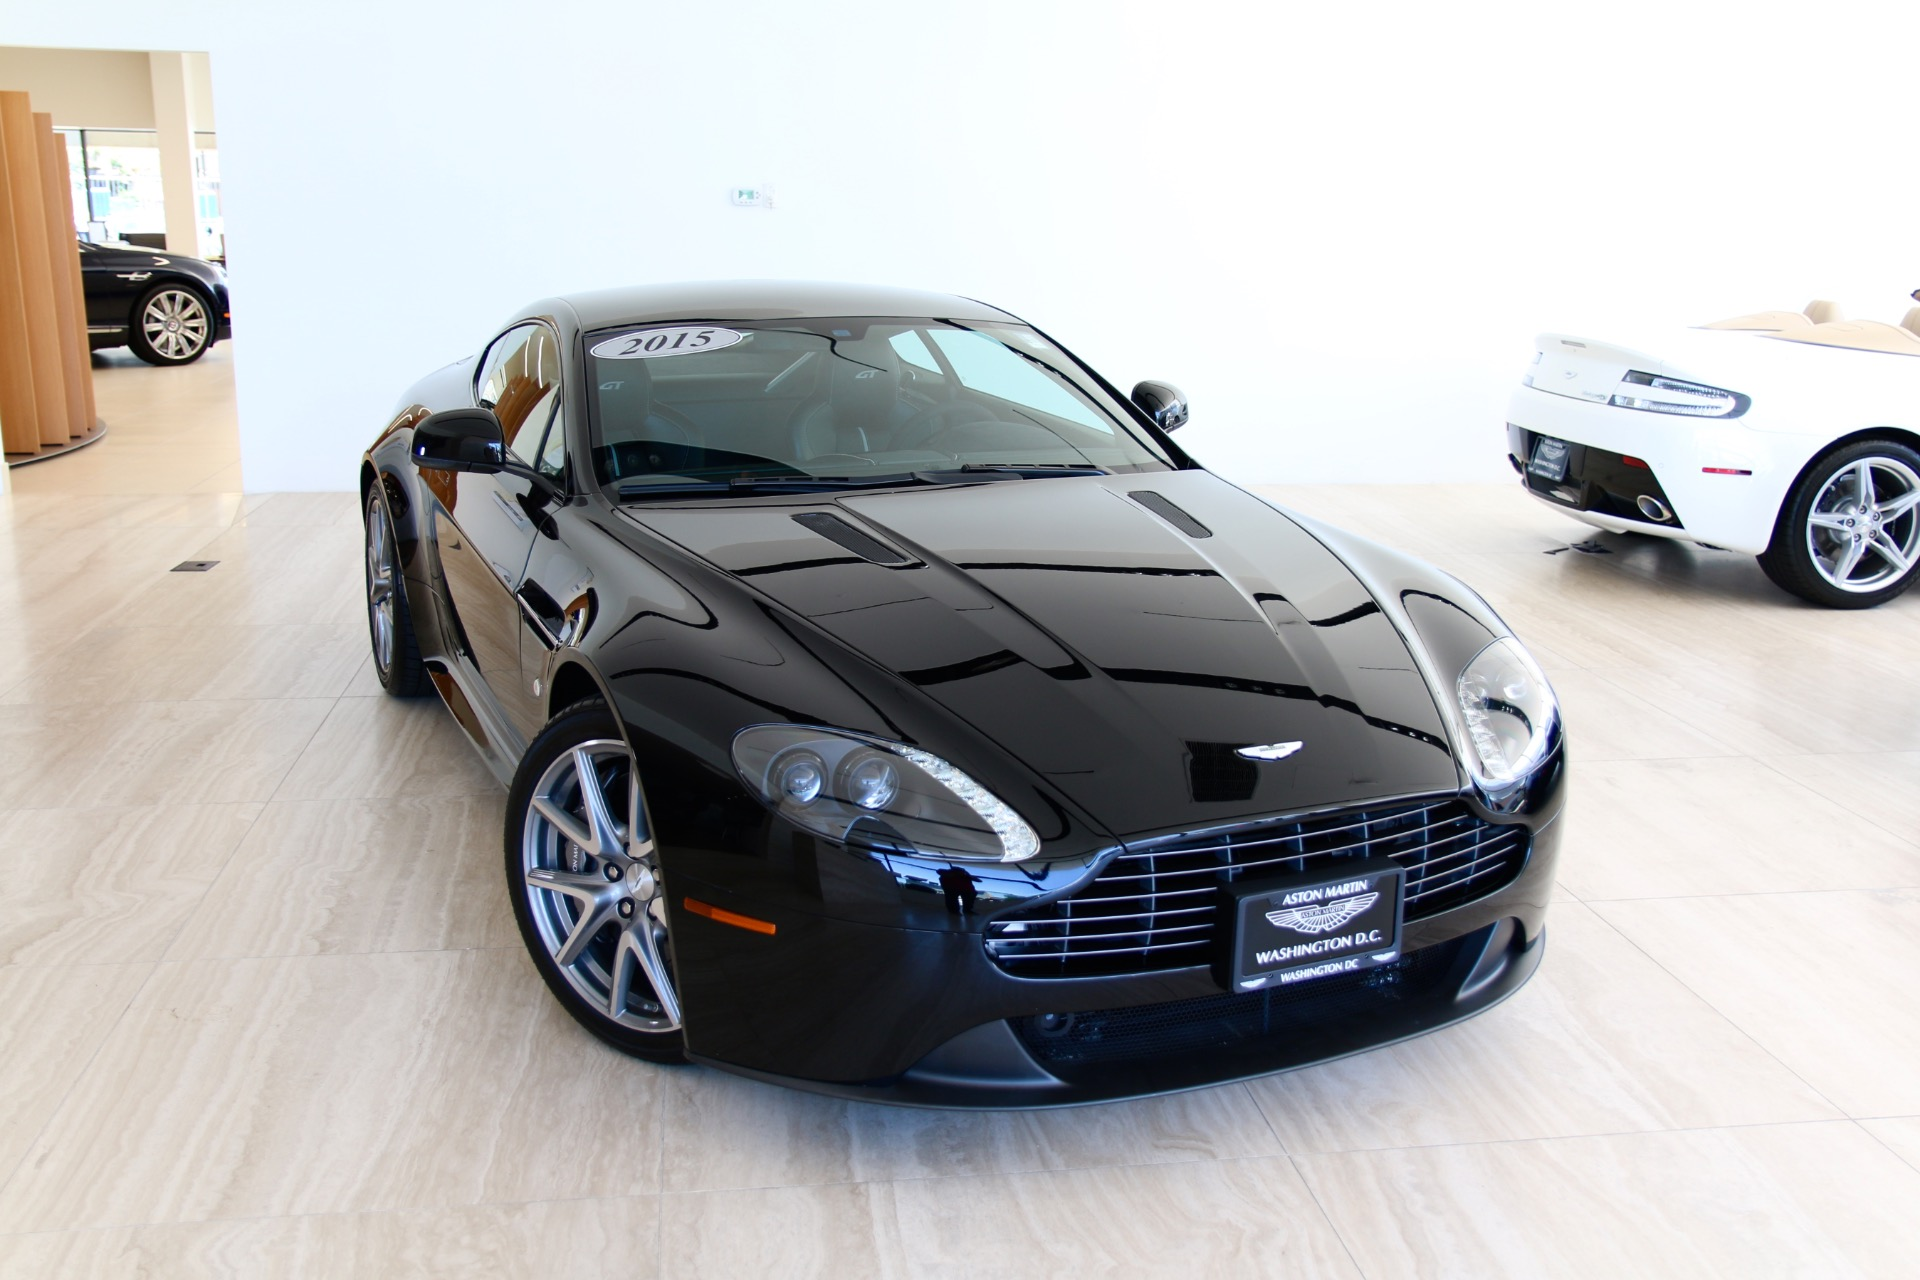 Aston Martin V Vantage GT Coupe GT Stock DC For Sale - Aston martin gt